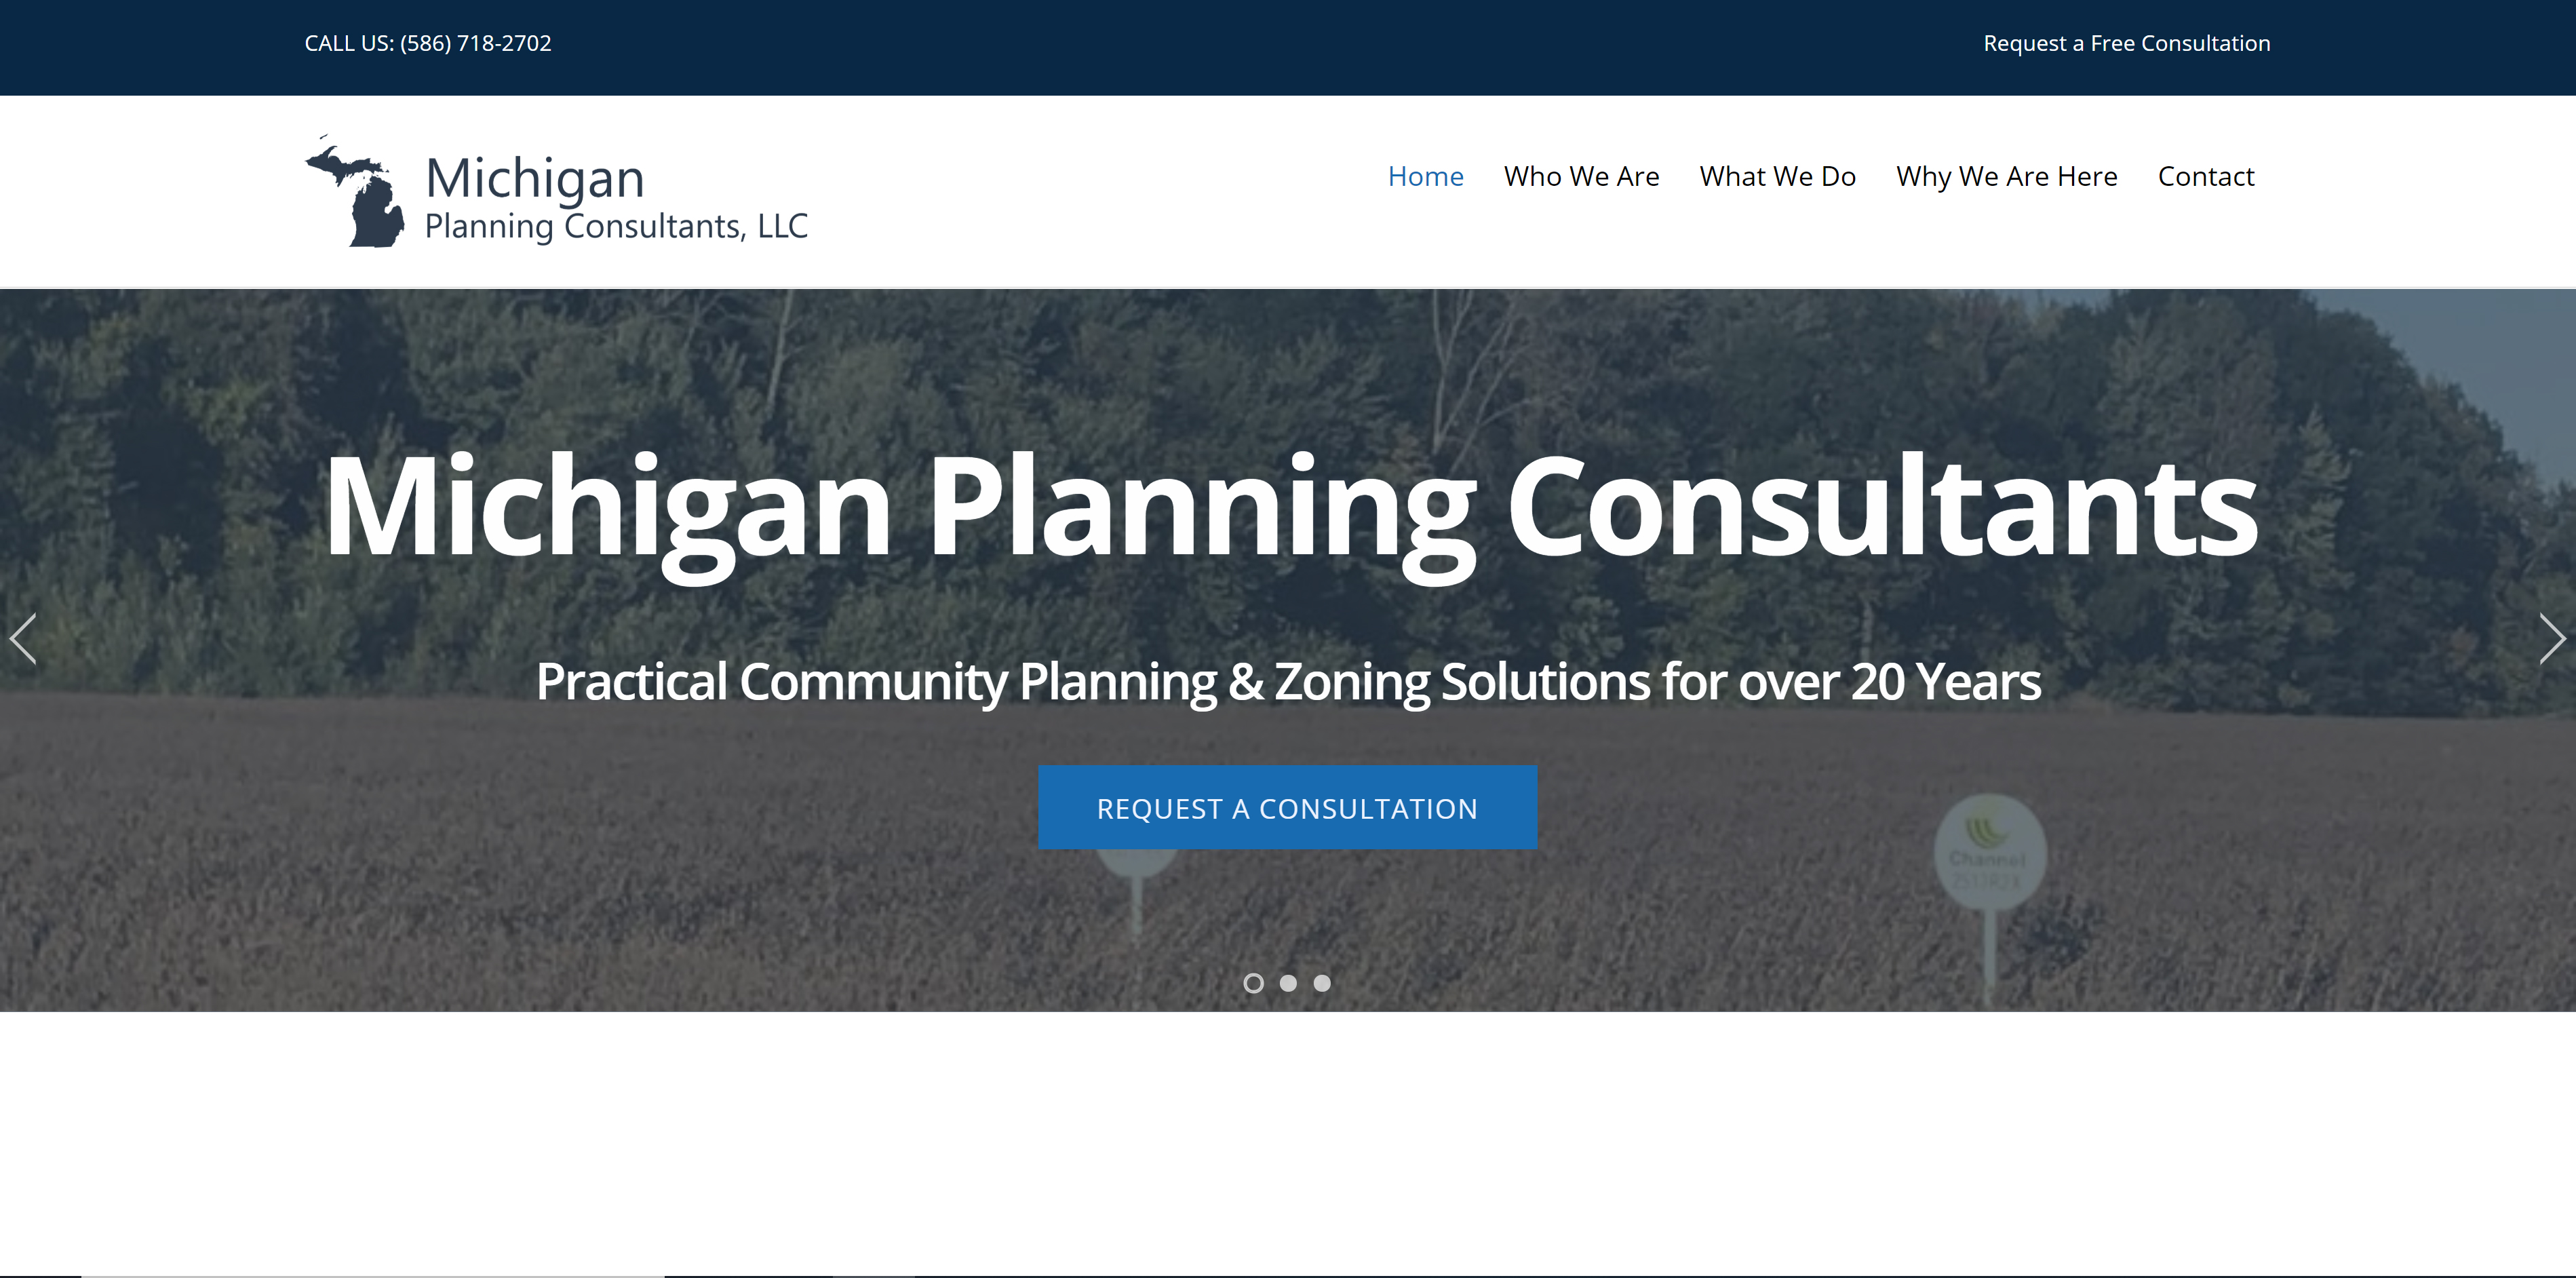 Michigan Planning Consultants